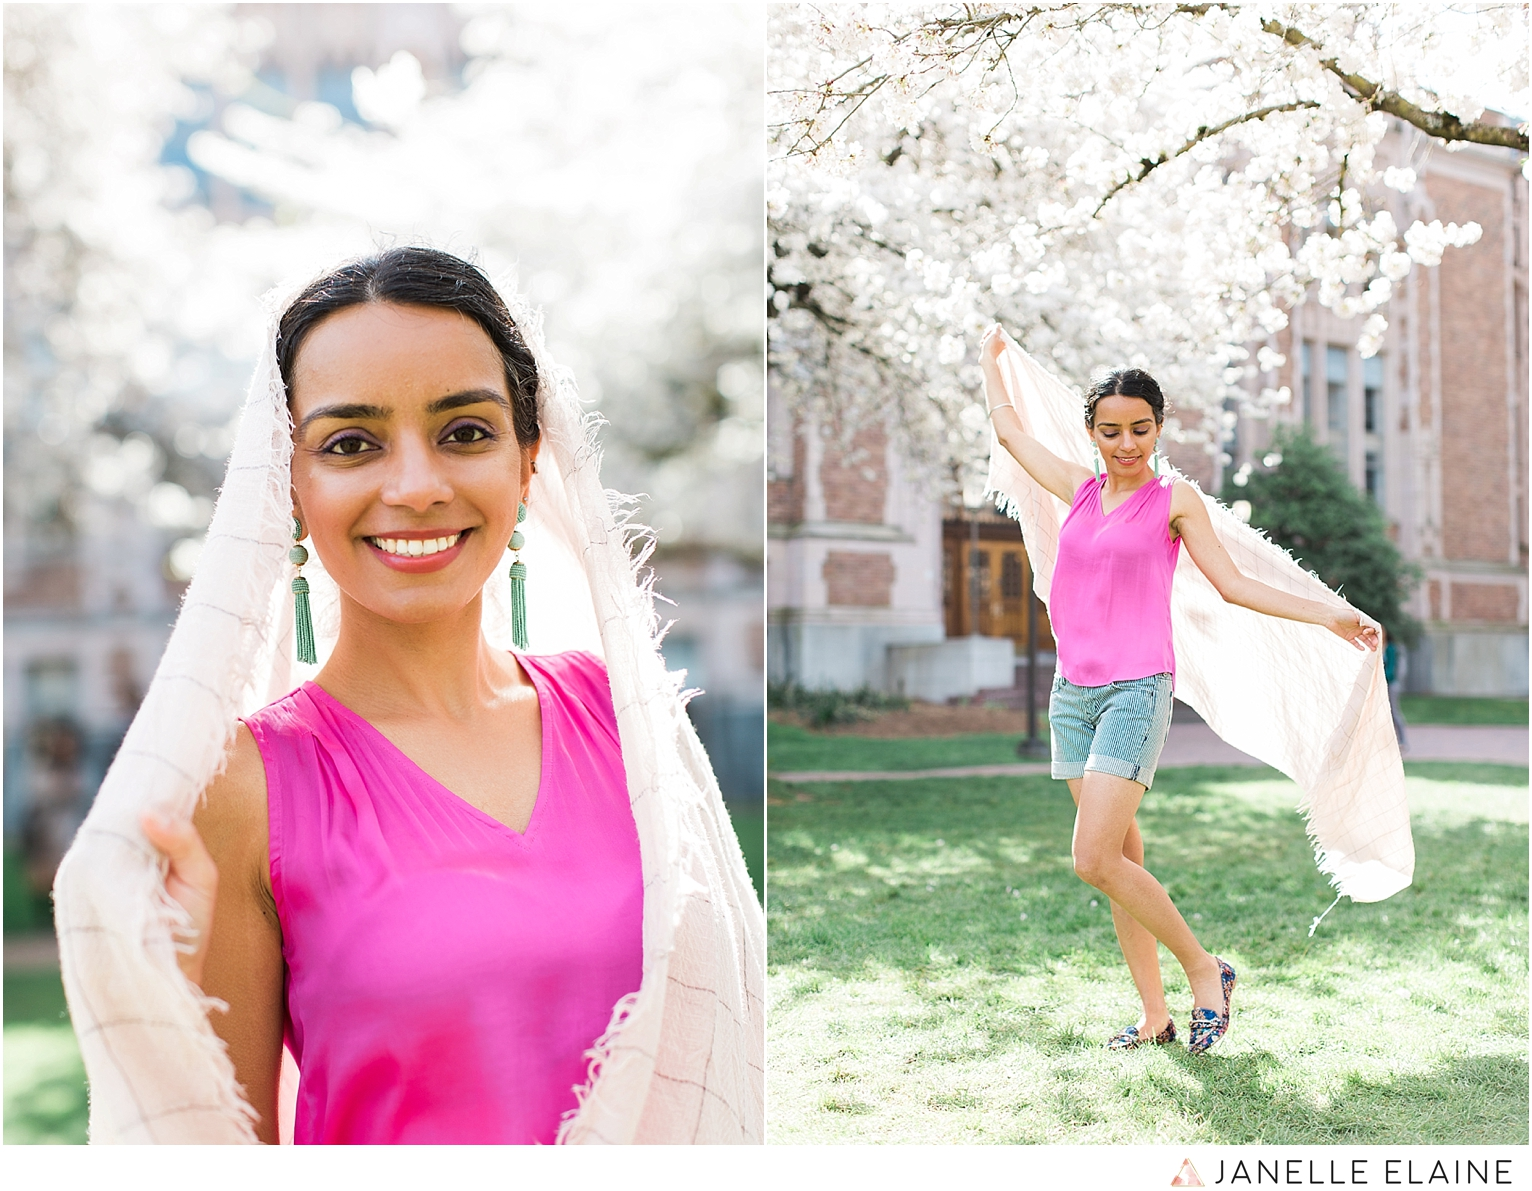 Sufience-Harkirat-spring portrait session-cherry blossoms-uw-seattle photographer janelle elaine-97.jpg